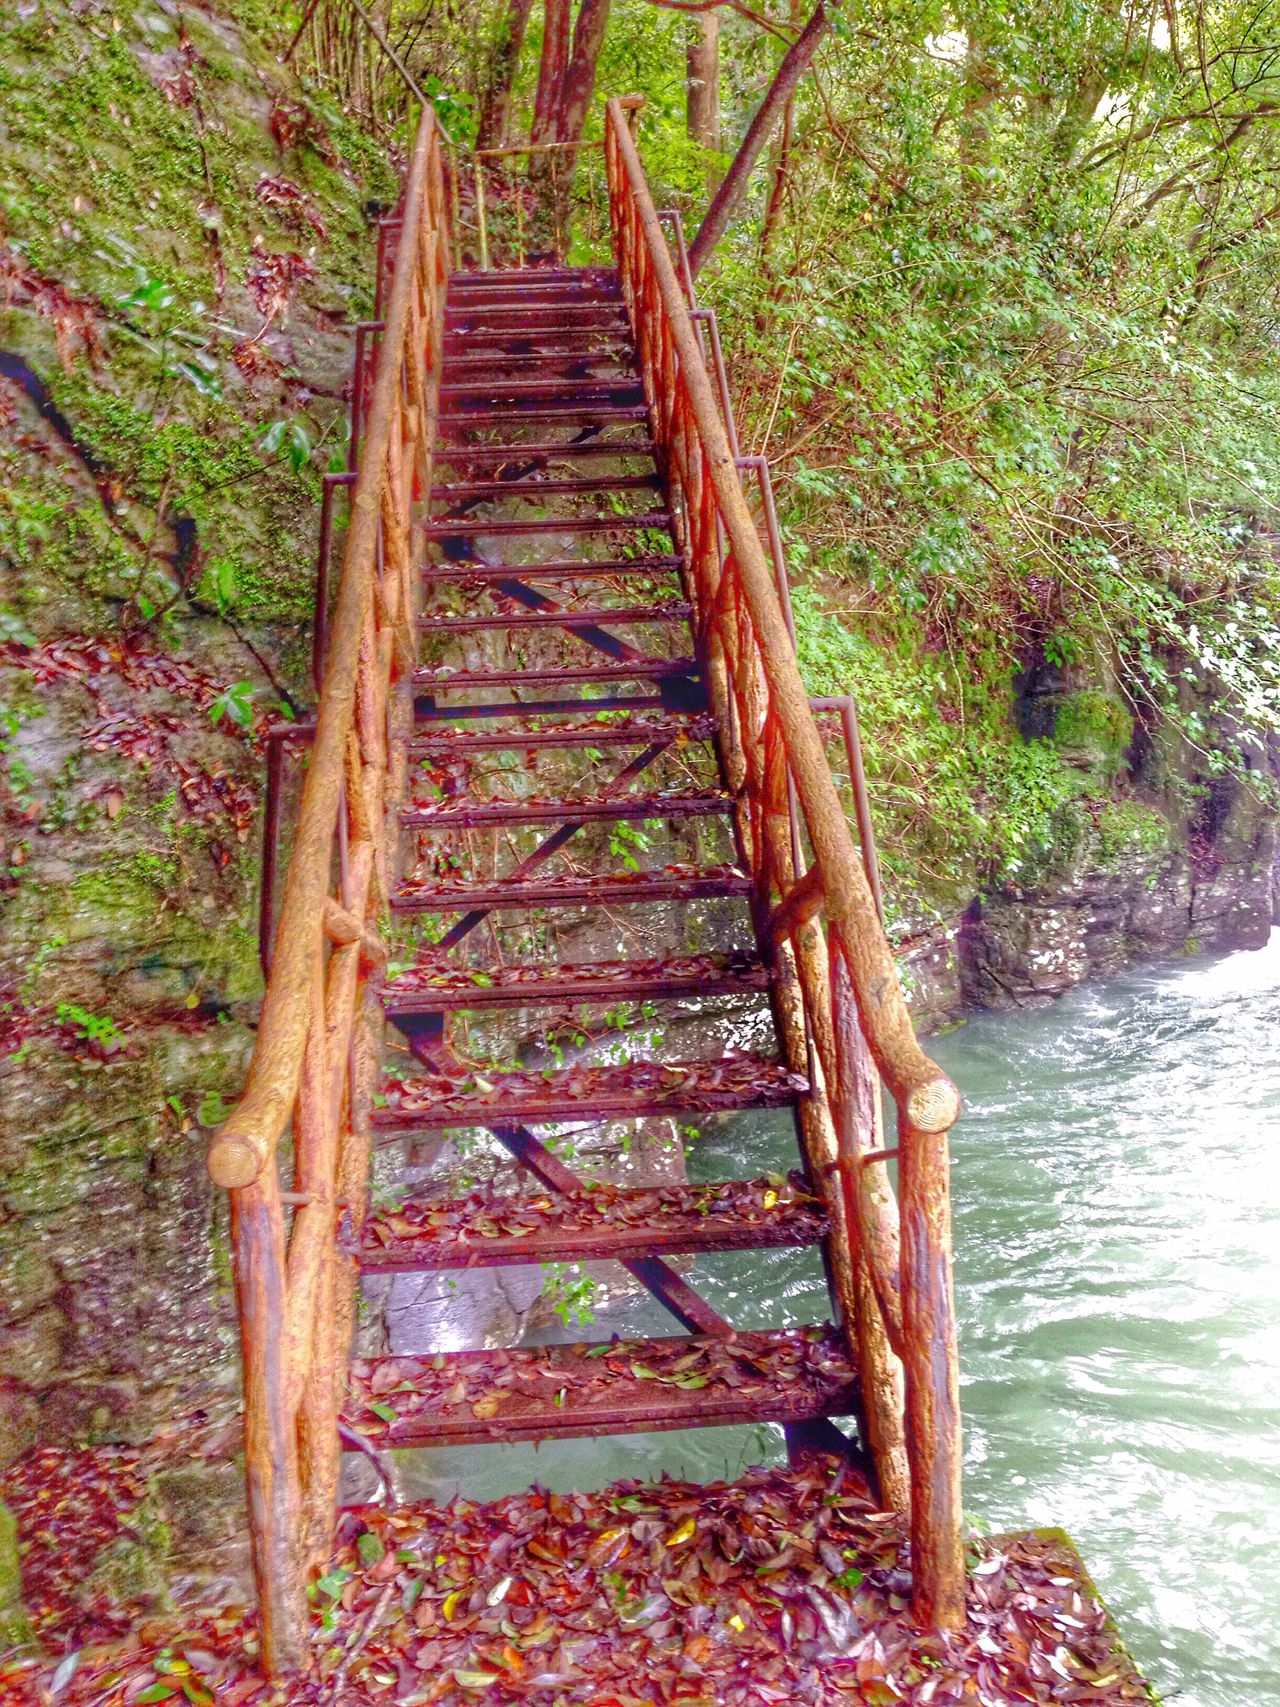 Beauty In Nature Staircase past the wate Waterfall Chasing Waterfalls In The Woods In The Forest Mountains And Valleys Creekside Trail The Great Outdoors - 2016 EyeEm Awards Japan Scenery In Nagasaki, Perfecture Japan Nature's Diversities - 2016 EyeEm Awards